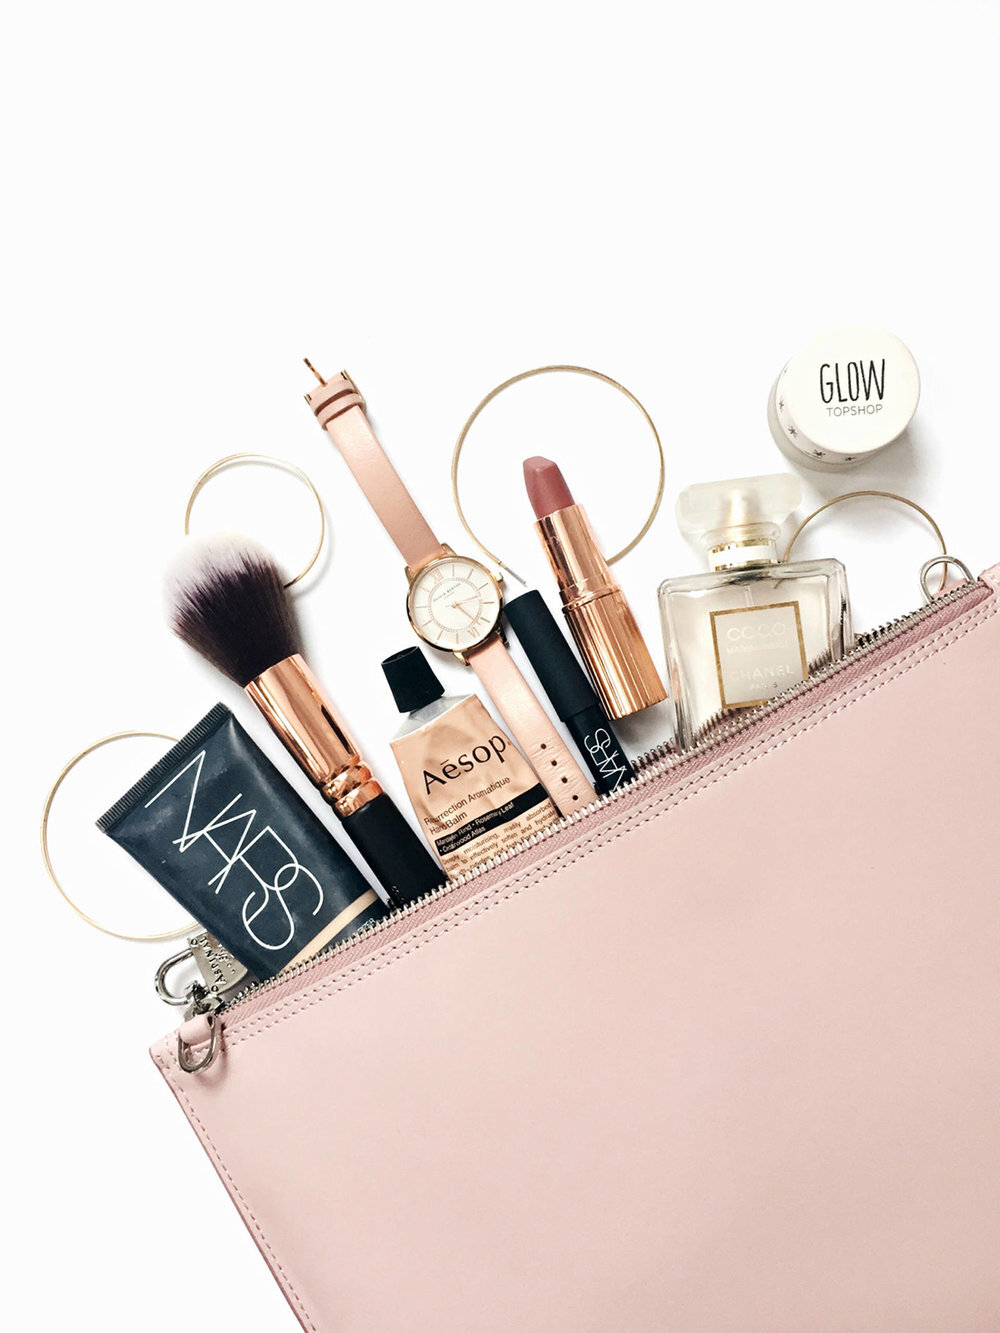 Sharing some of my beauty essentials for a weekend work trip on my blog, beautybyjessika.org.